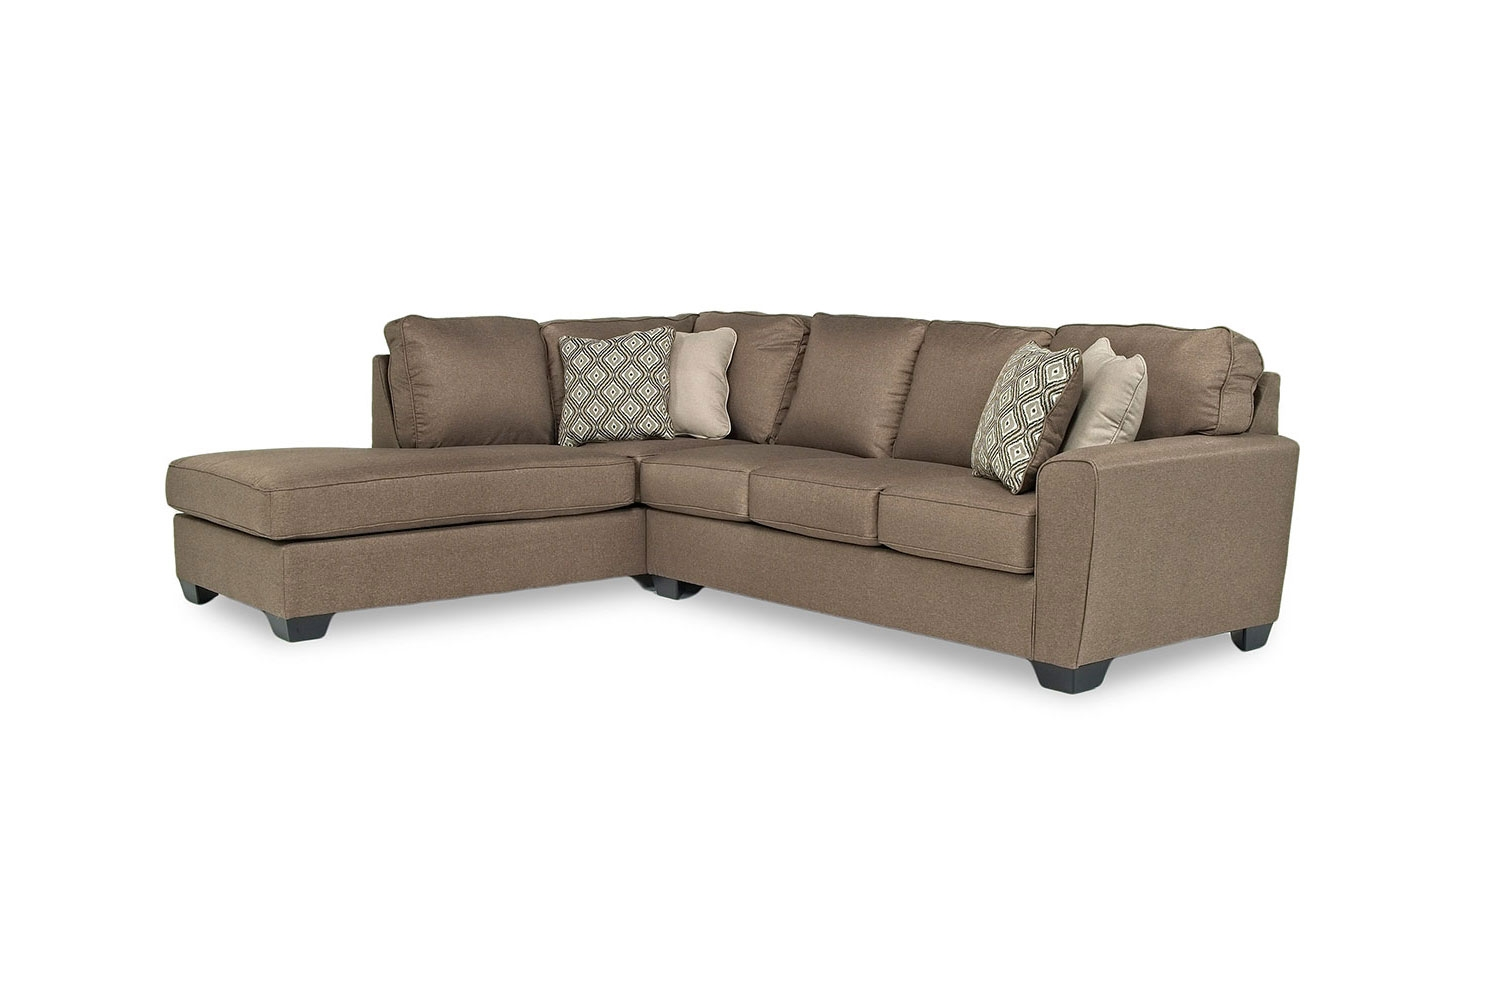 613524347 Calicho Left Facing Chaise Sectional